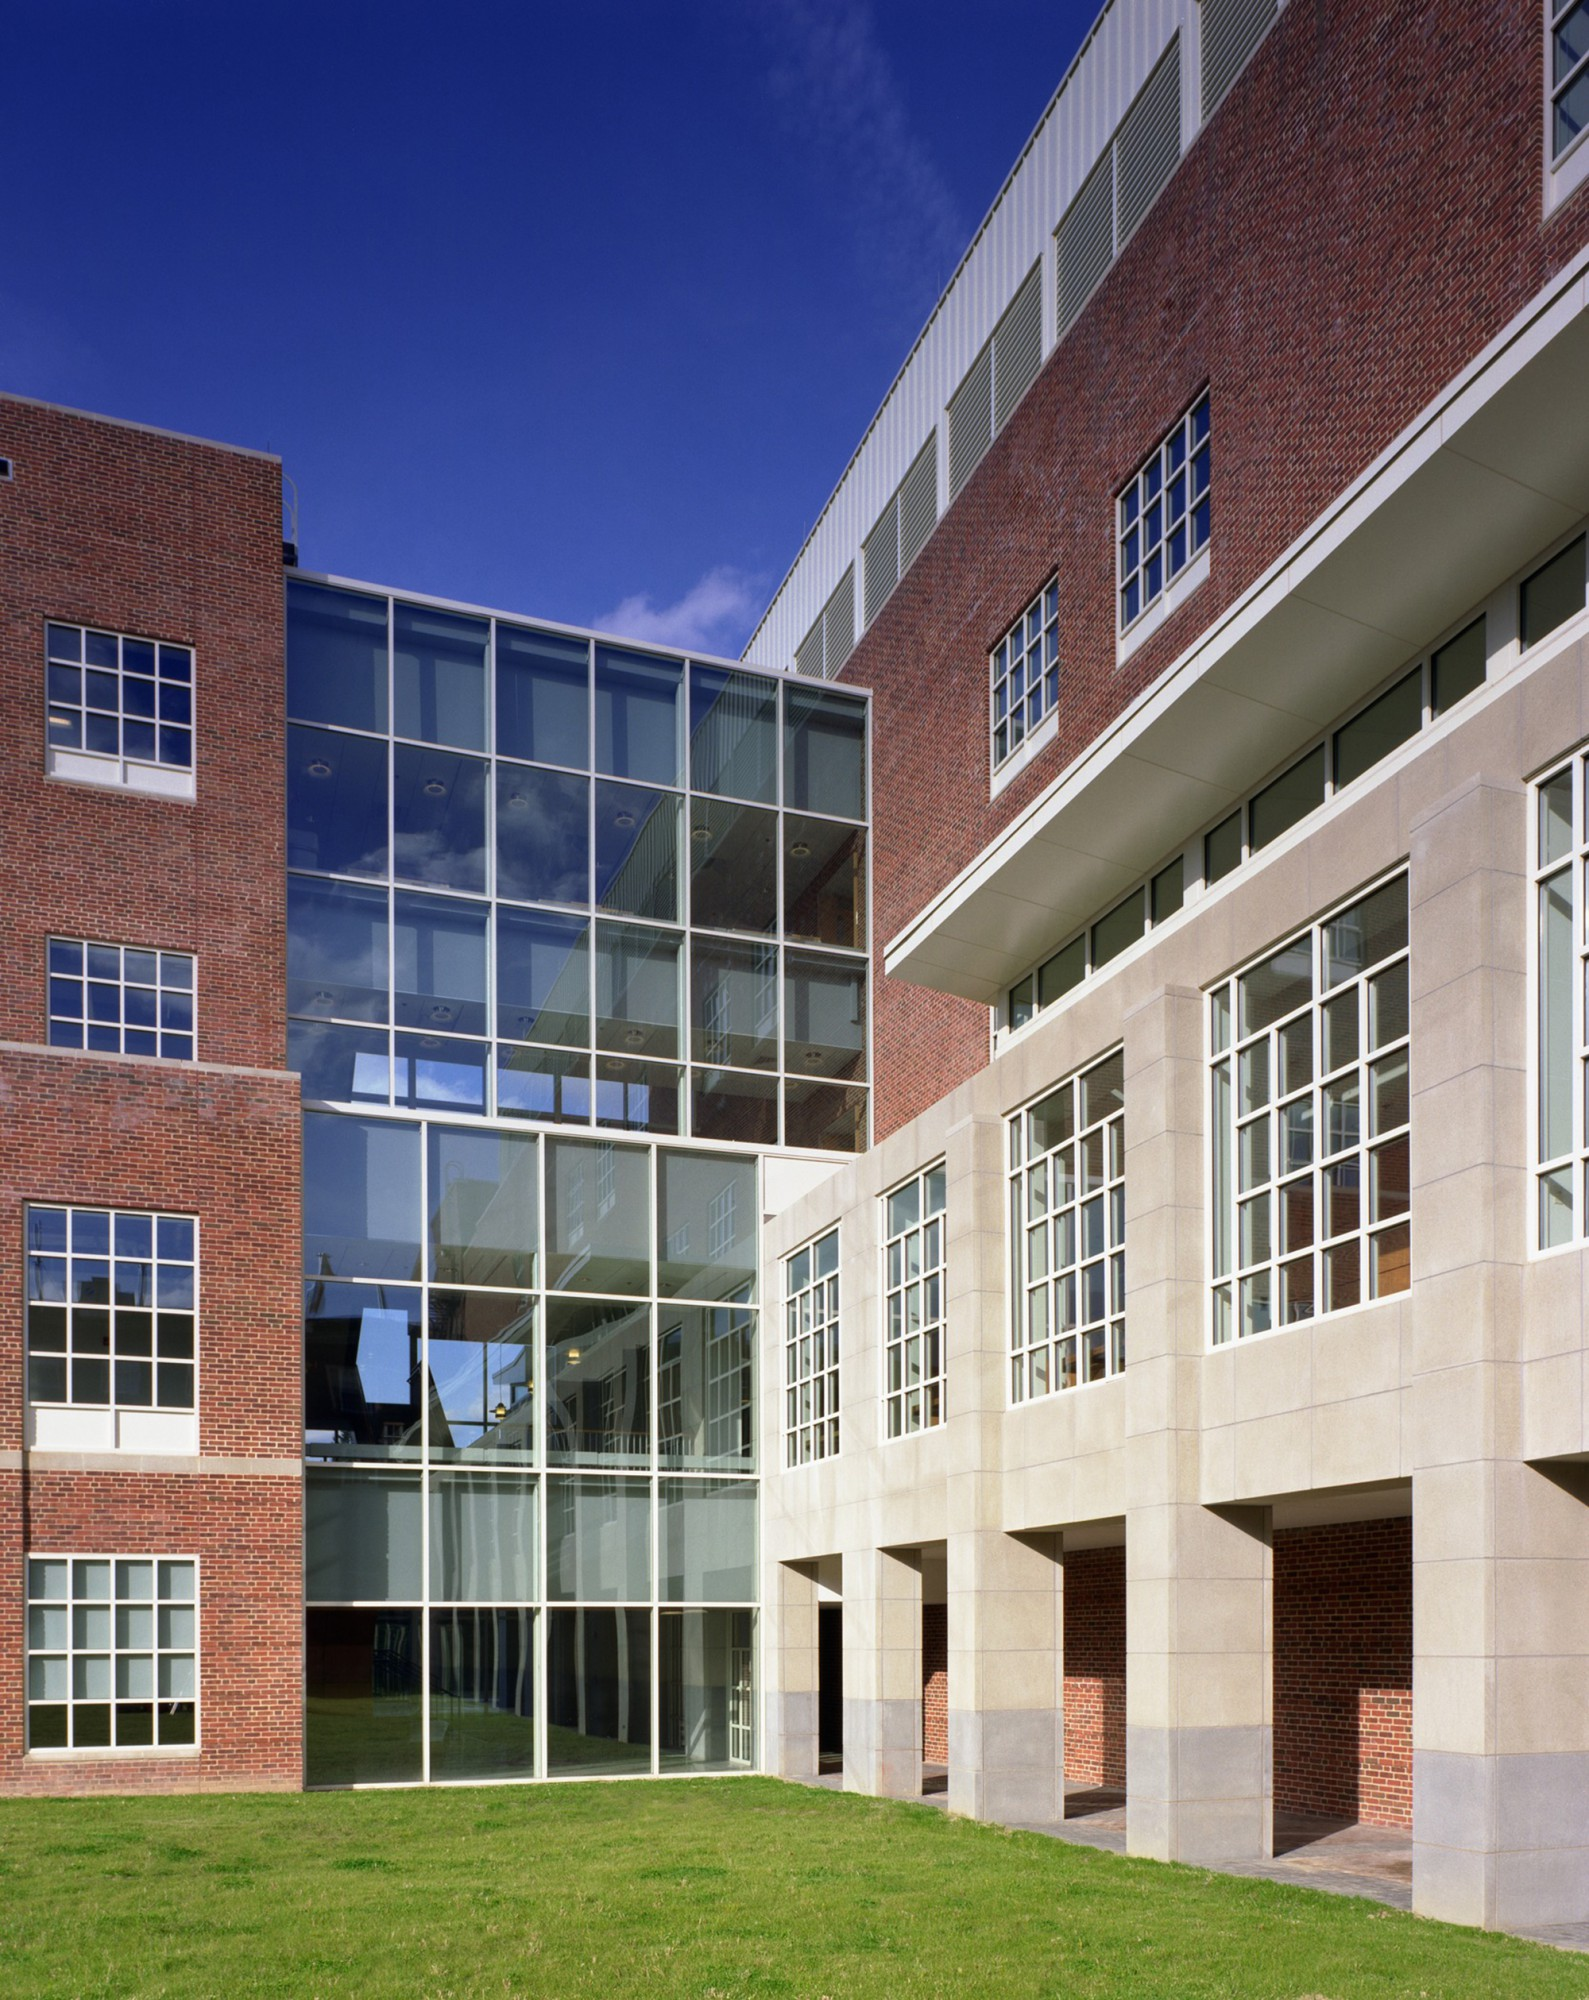 Coppin State University >> University of Maryland, College Park - Chemistry Building